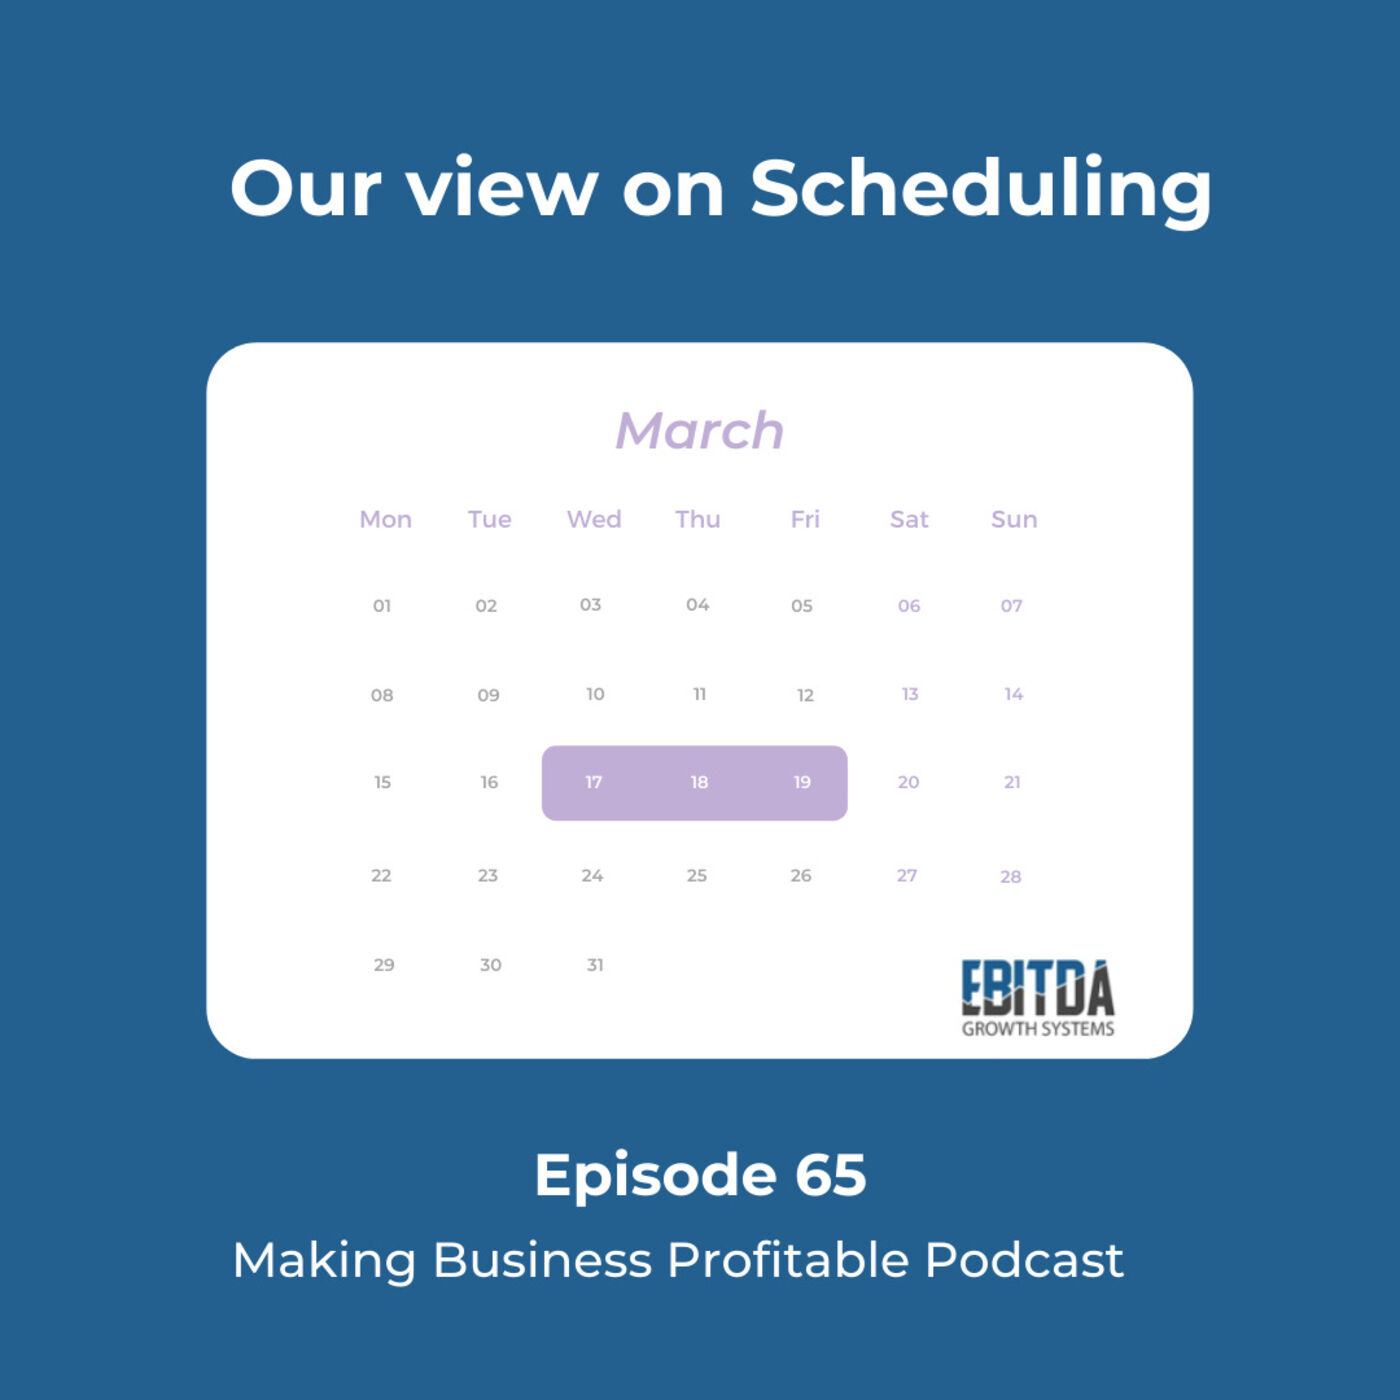 Episode 65 - Our View on Scheduling